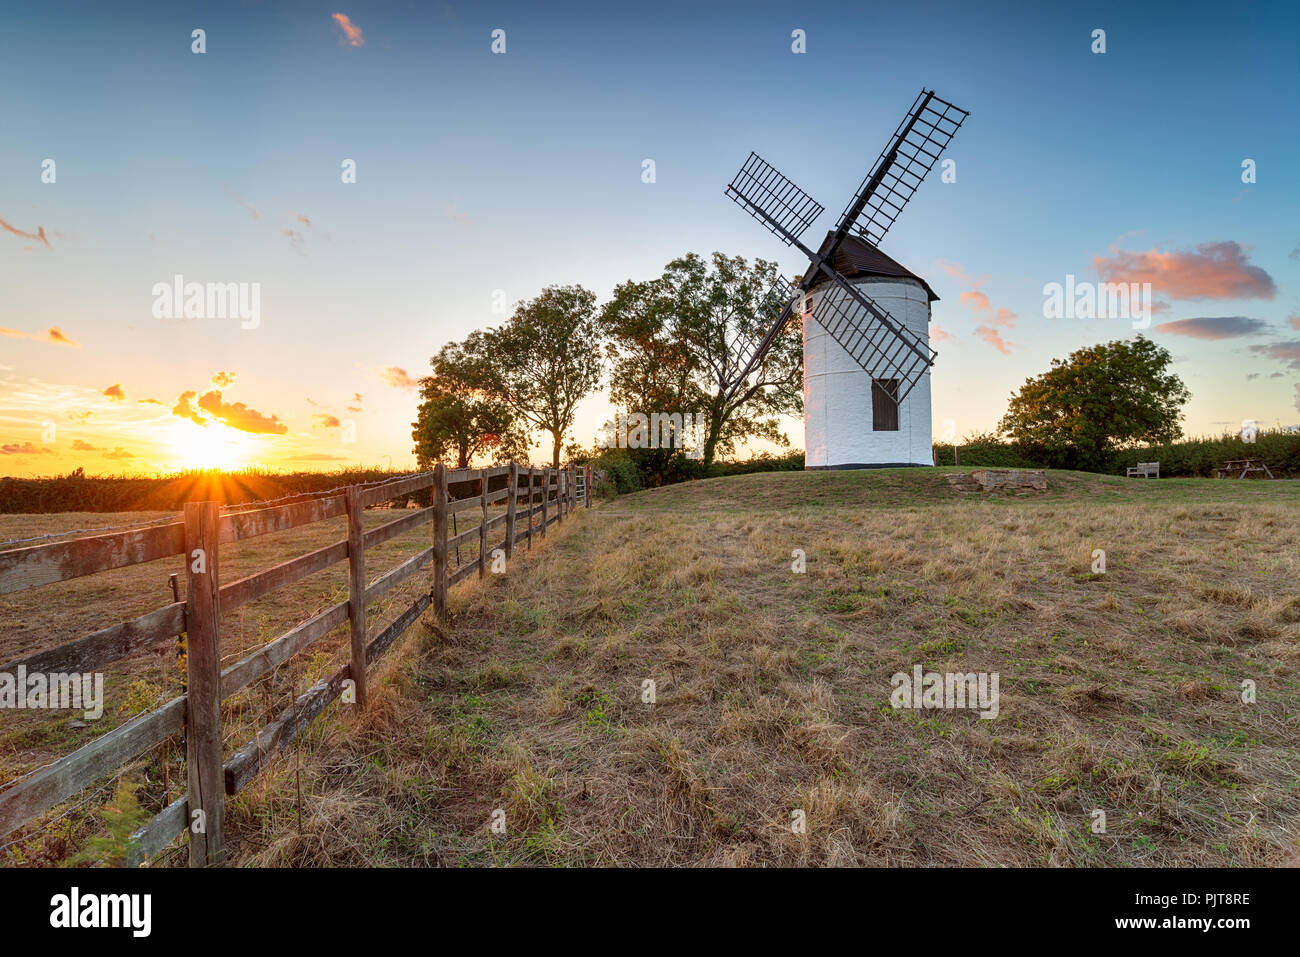 Sunset over Ashton Windmill at Wedmore in the Somerset countryside - Stock Image